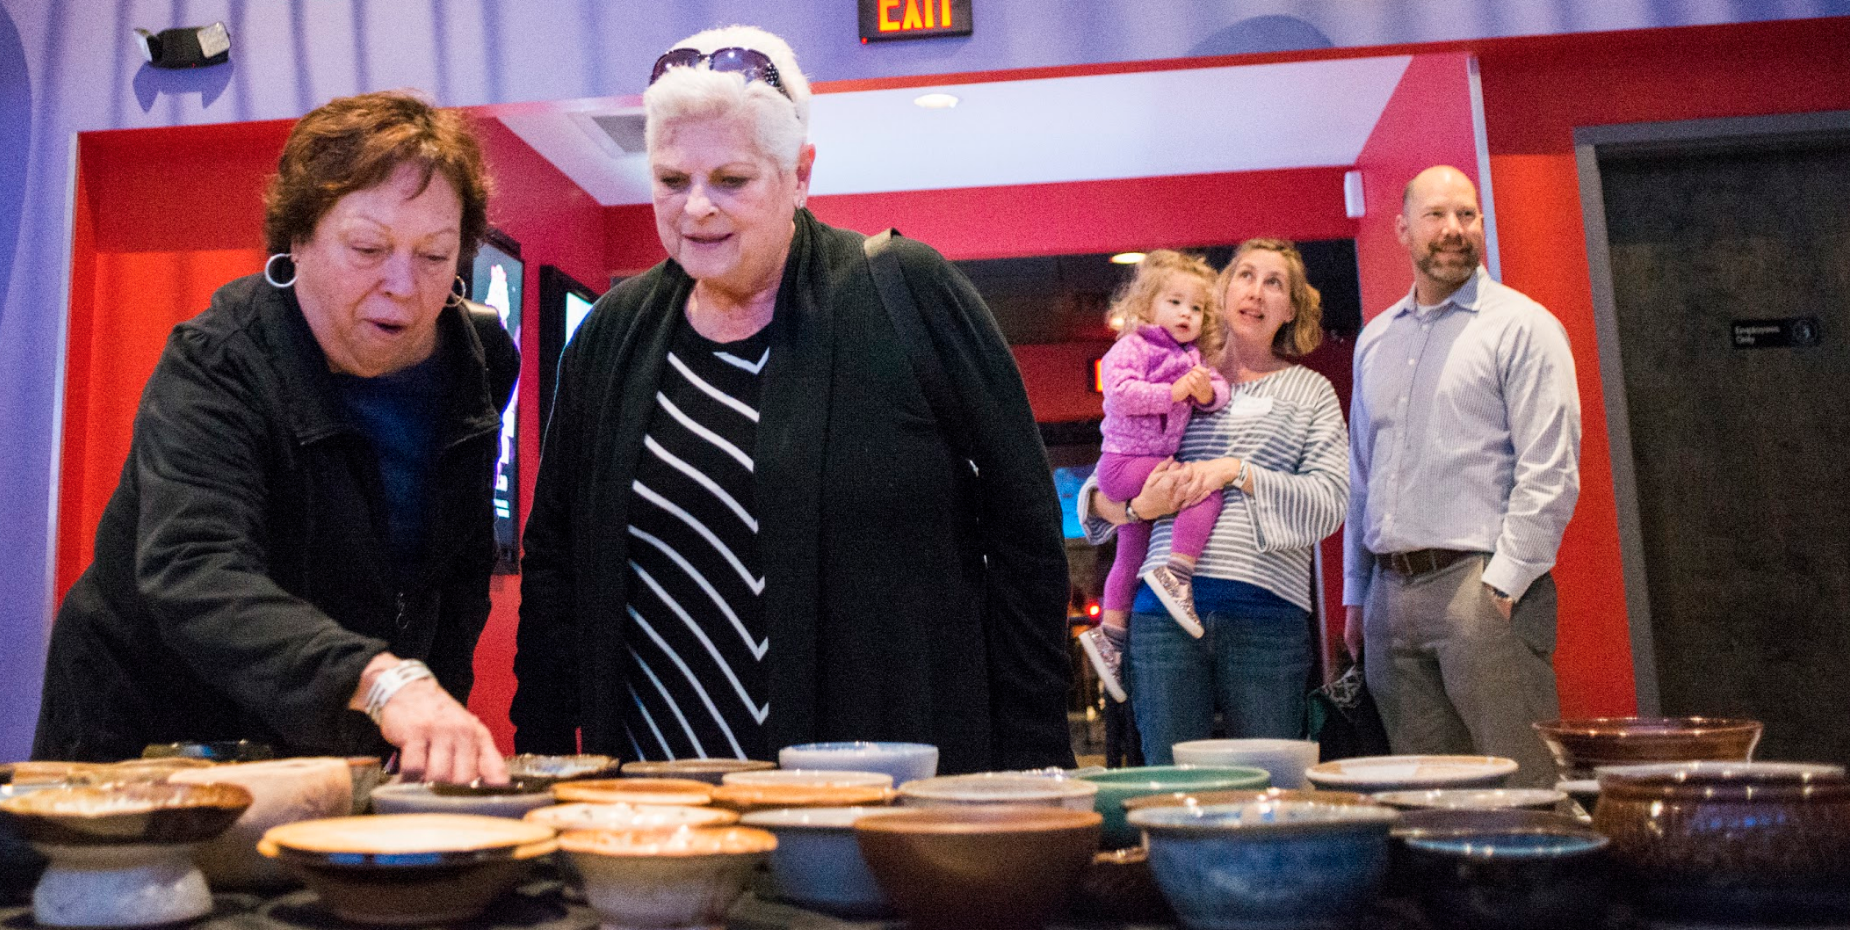 Attendees shopping for their Empty Bowl. Proceeds from this event support the fight against childhood hunger in Kentuckiana. March 3rd, 2018 | Play Dance Bar Photo: Christopher Fryer